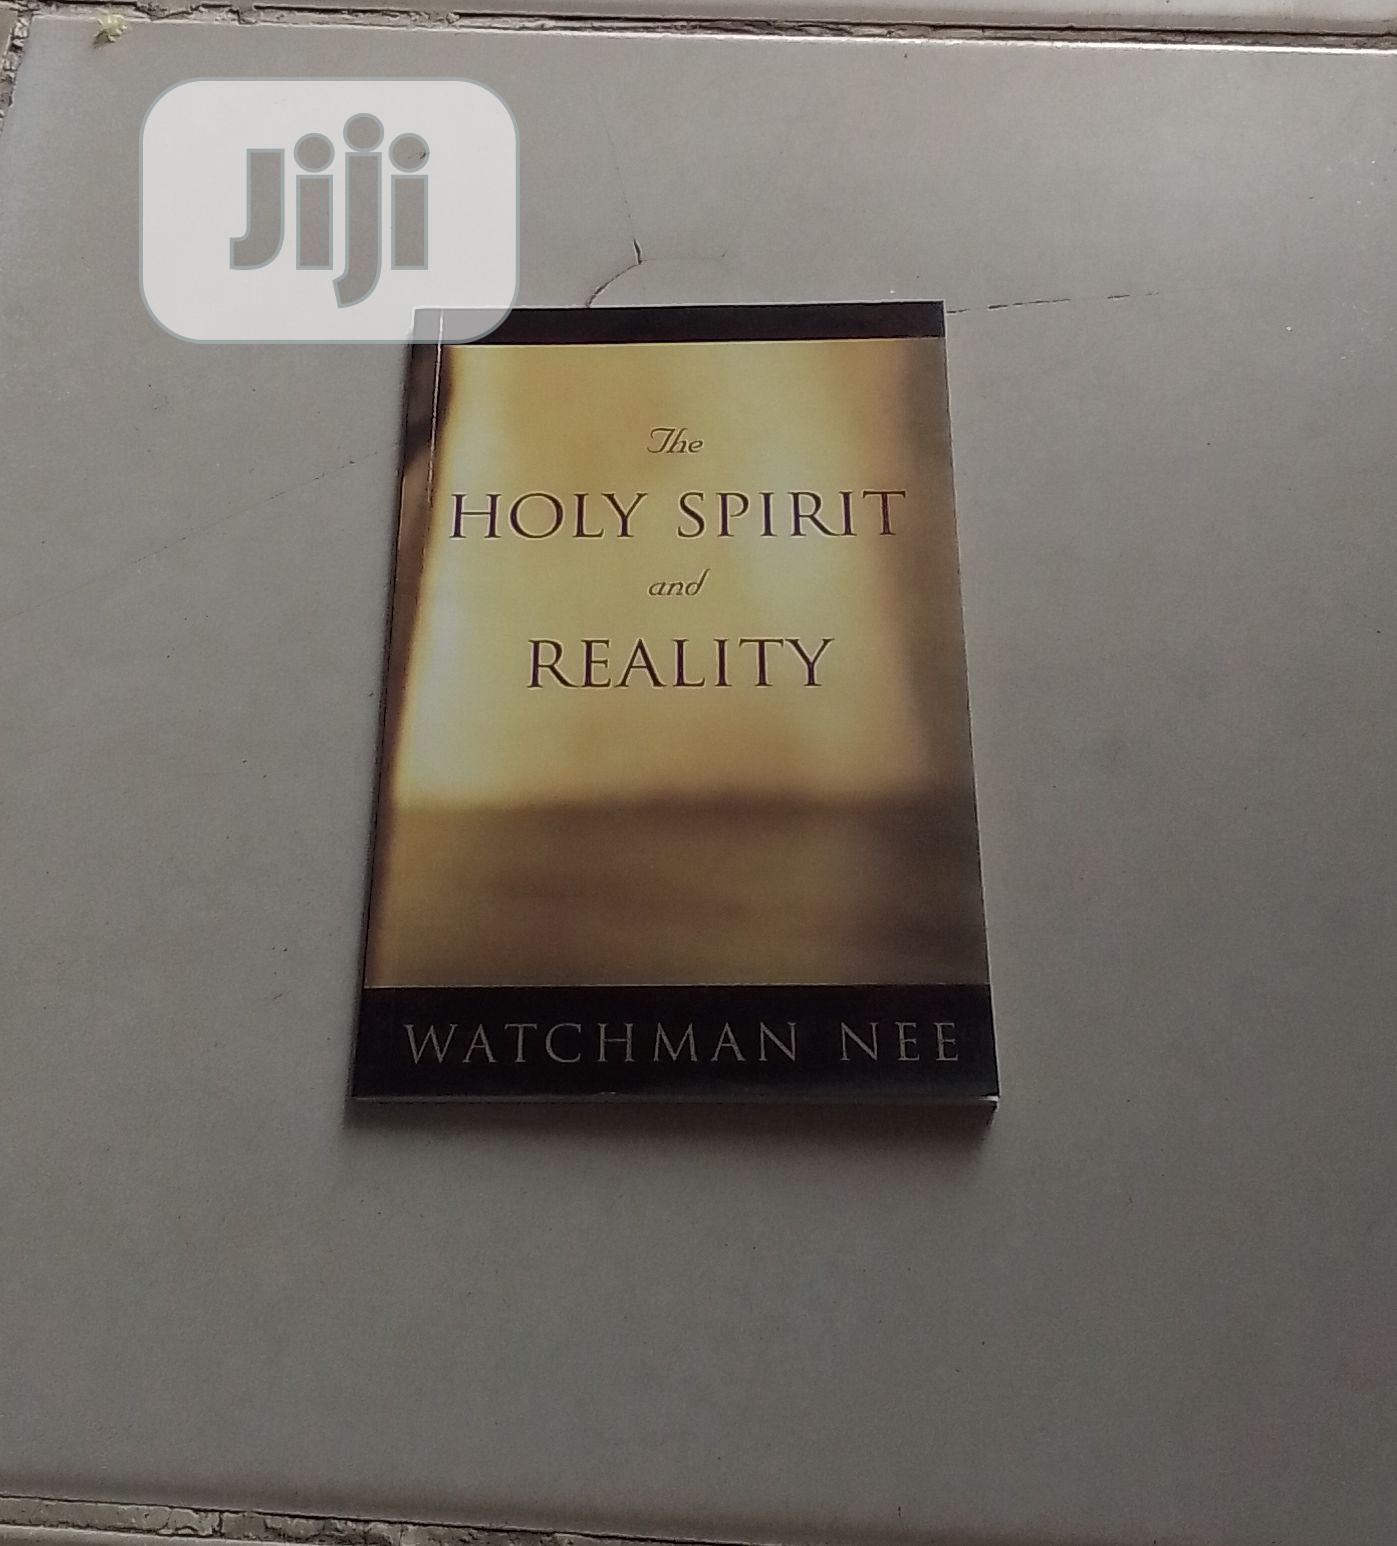 The Holy Spirit and Reality by Watchman Nee